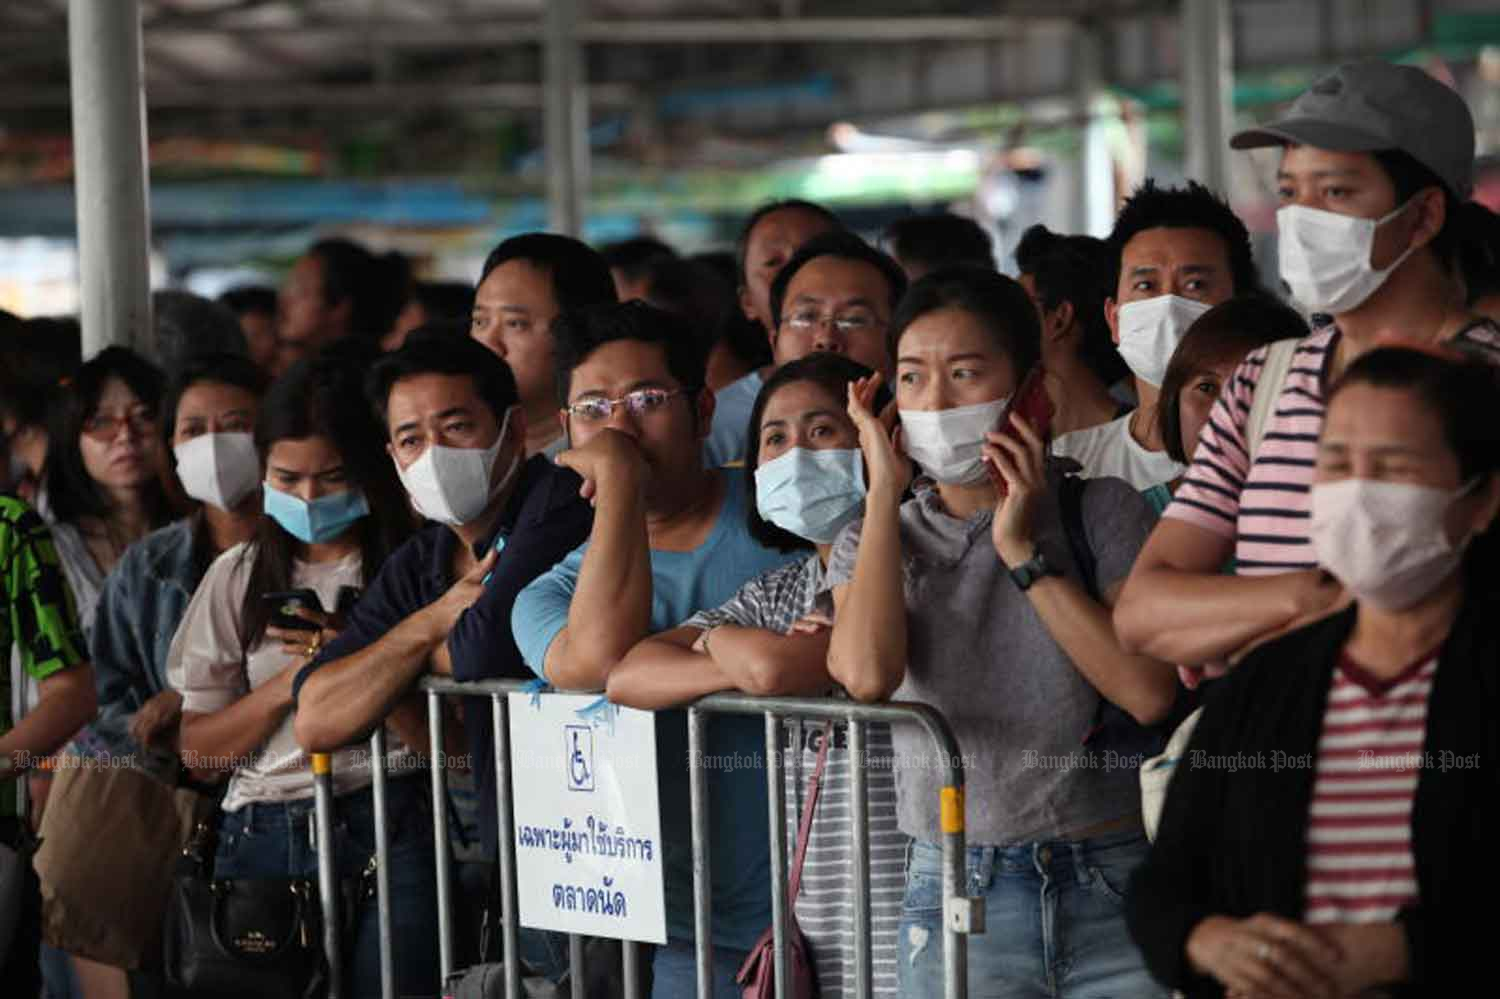 Vendors gather at Chatuchak market in Bangkok on Monday for the balloting of stalls for rent at the popular market. Many were wearing masks they hoped would protect them from infection. (Photo by Apichart Jinakul)